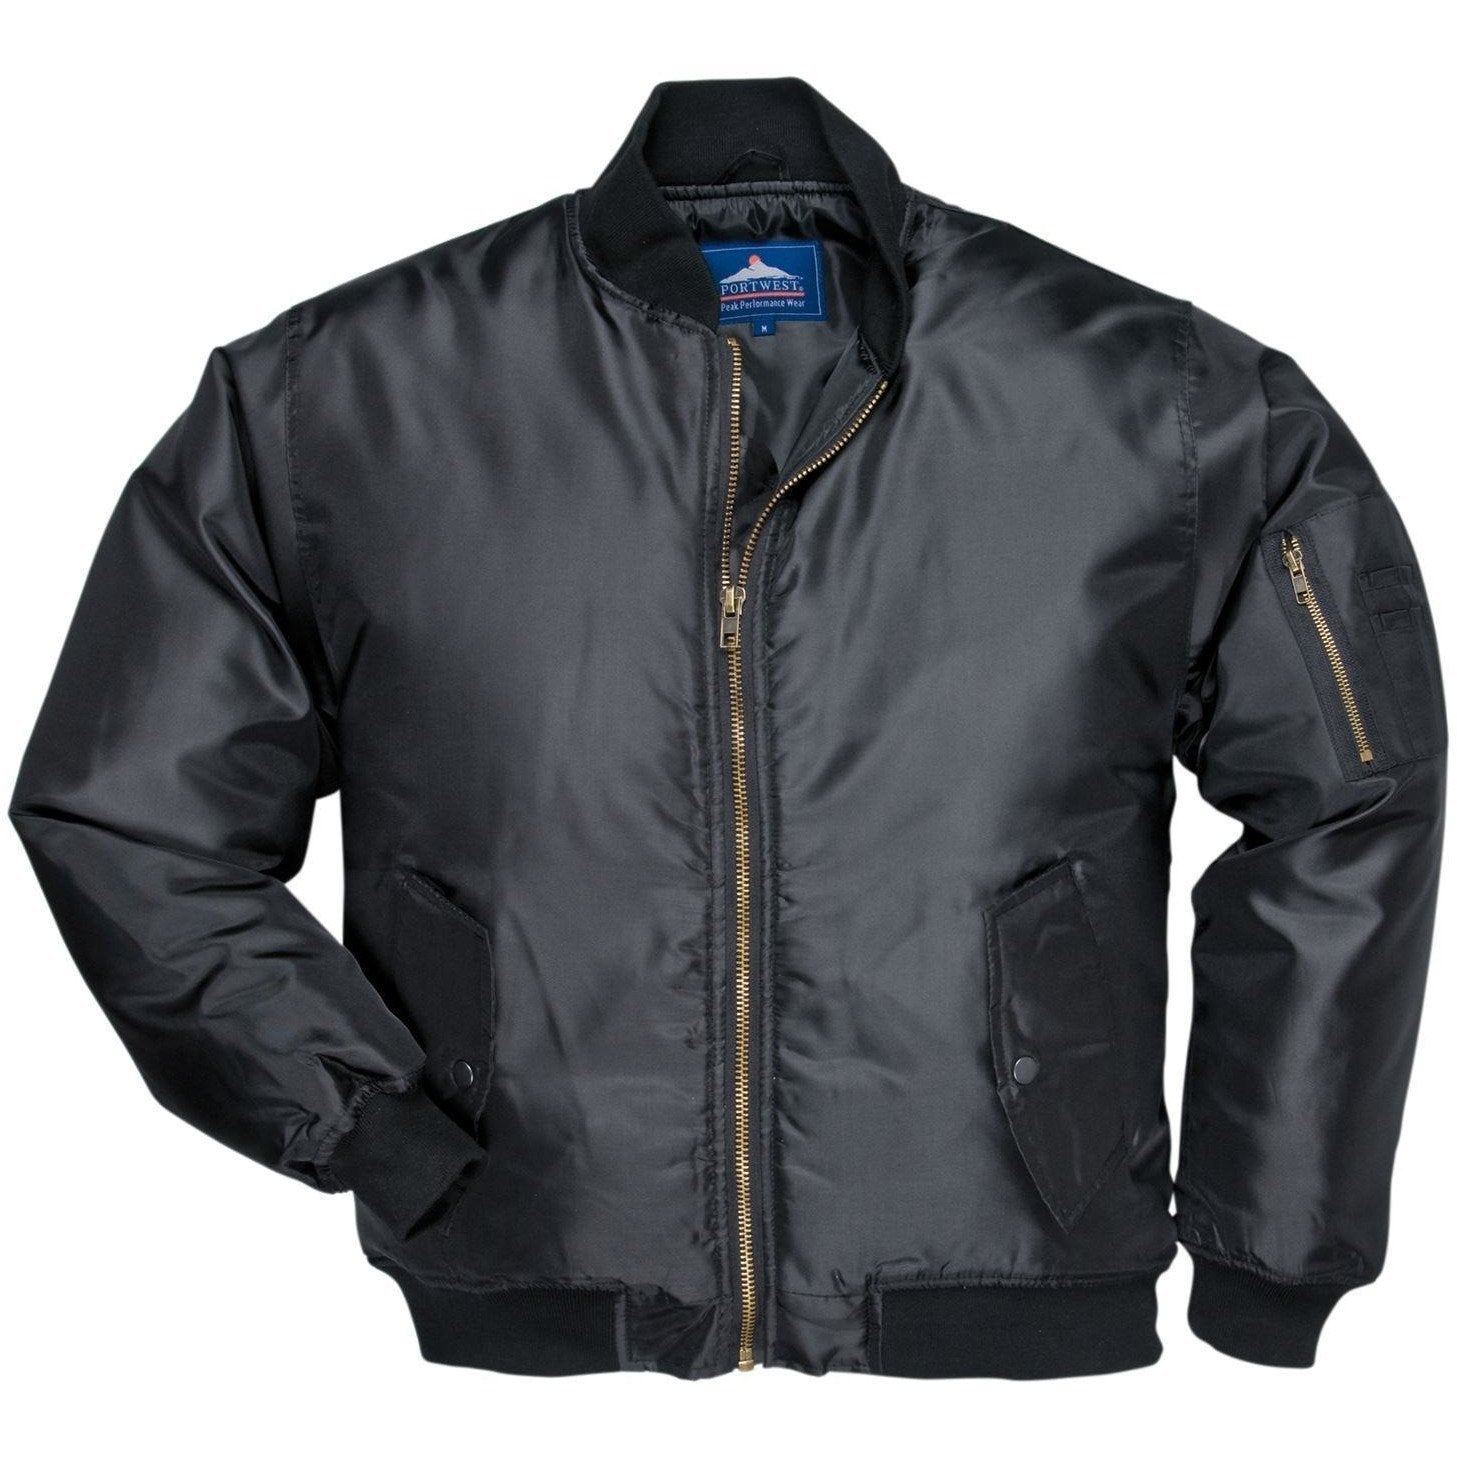 Portwest Pilot Jacket S535 - reid outdoors